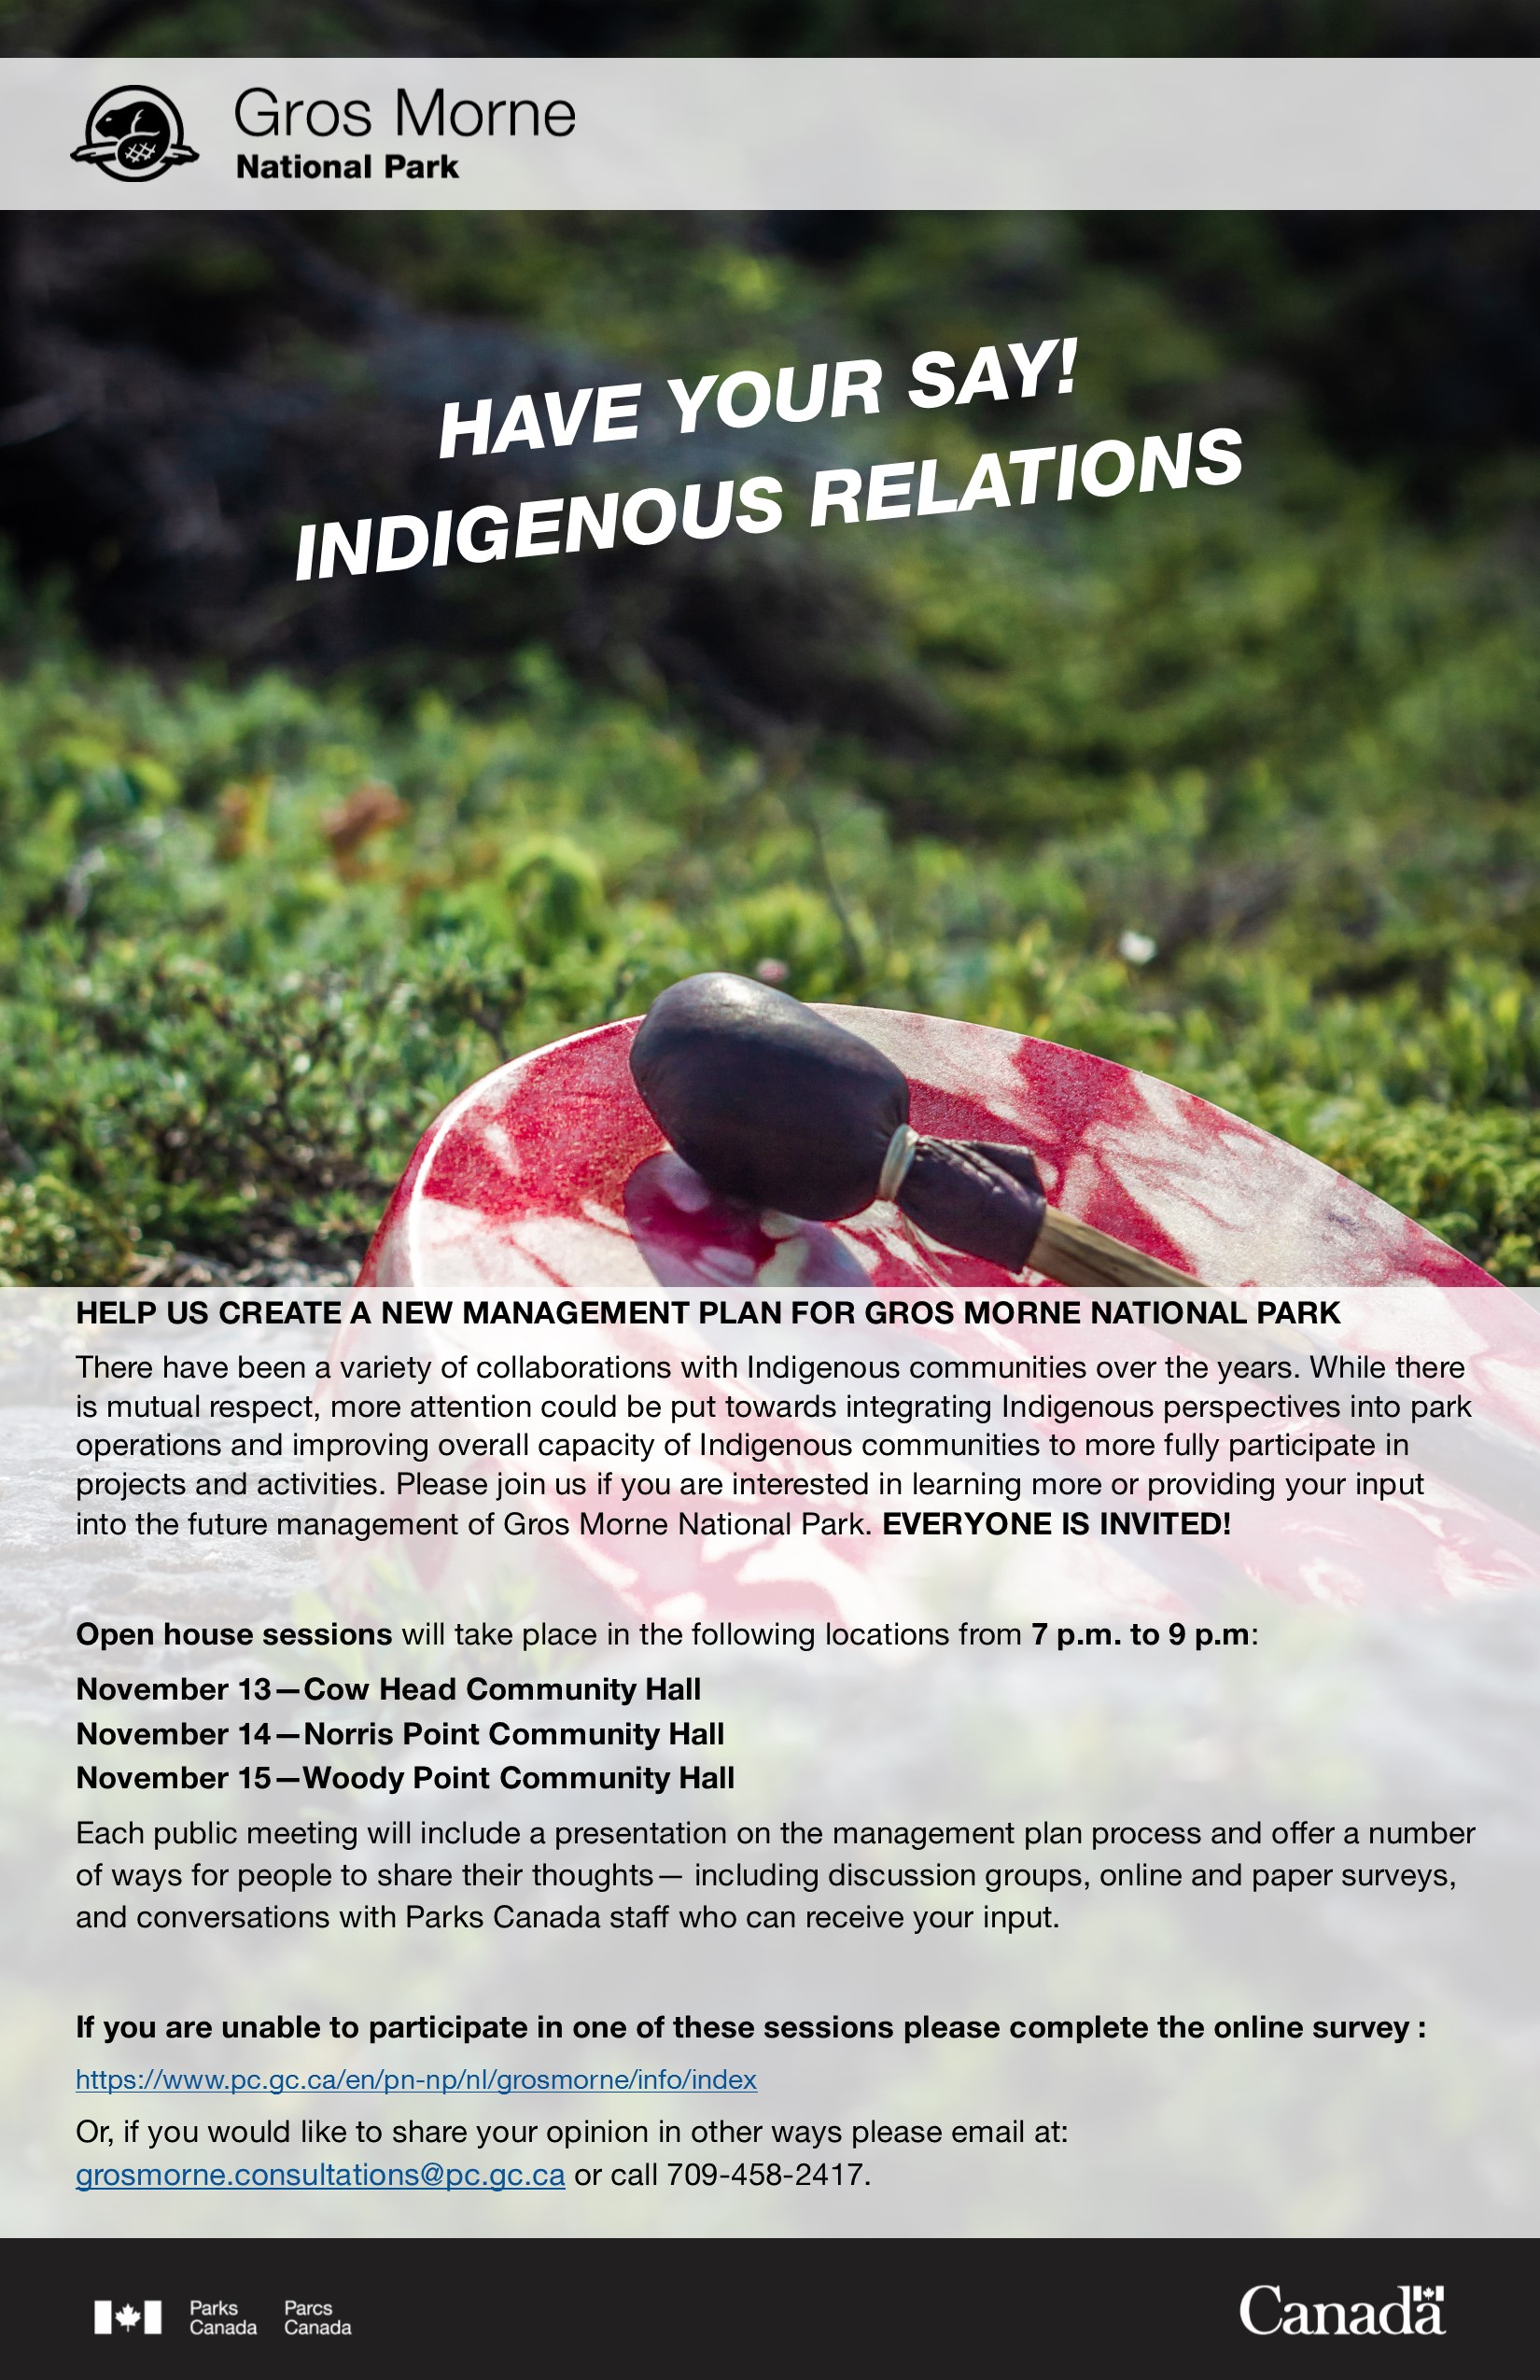 SM ads_GMNP management planning_INDIGENOUS RELATIONS_Oct 29, 2018_EN